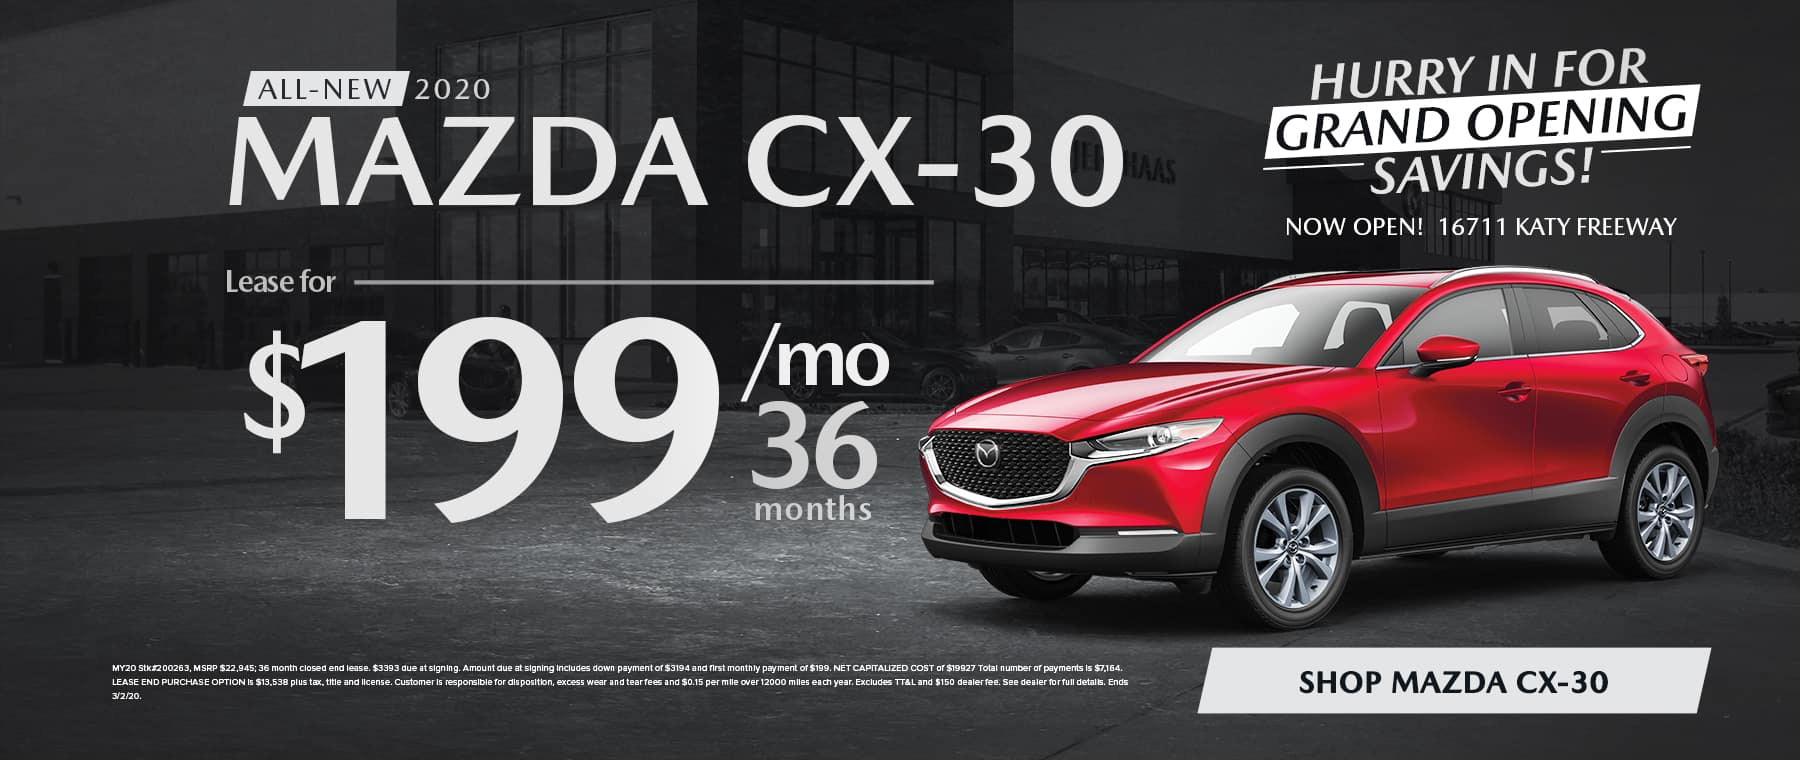 All-New 2020 MAZDA CX-30 Lease for $199/mo for 36 mo